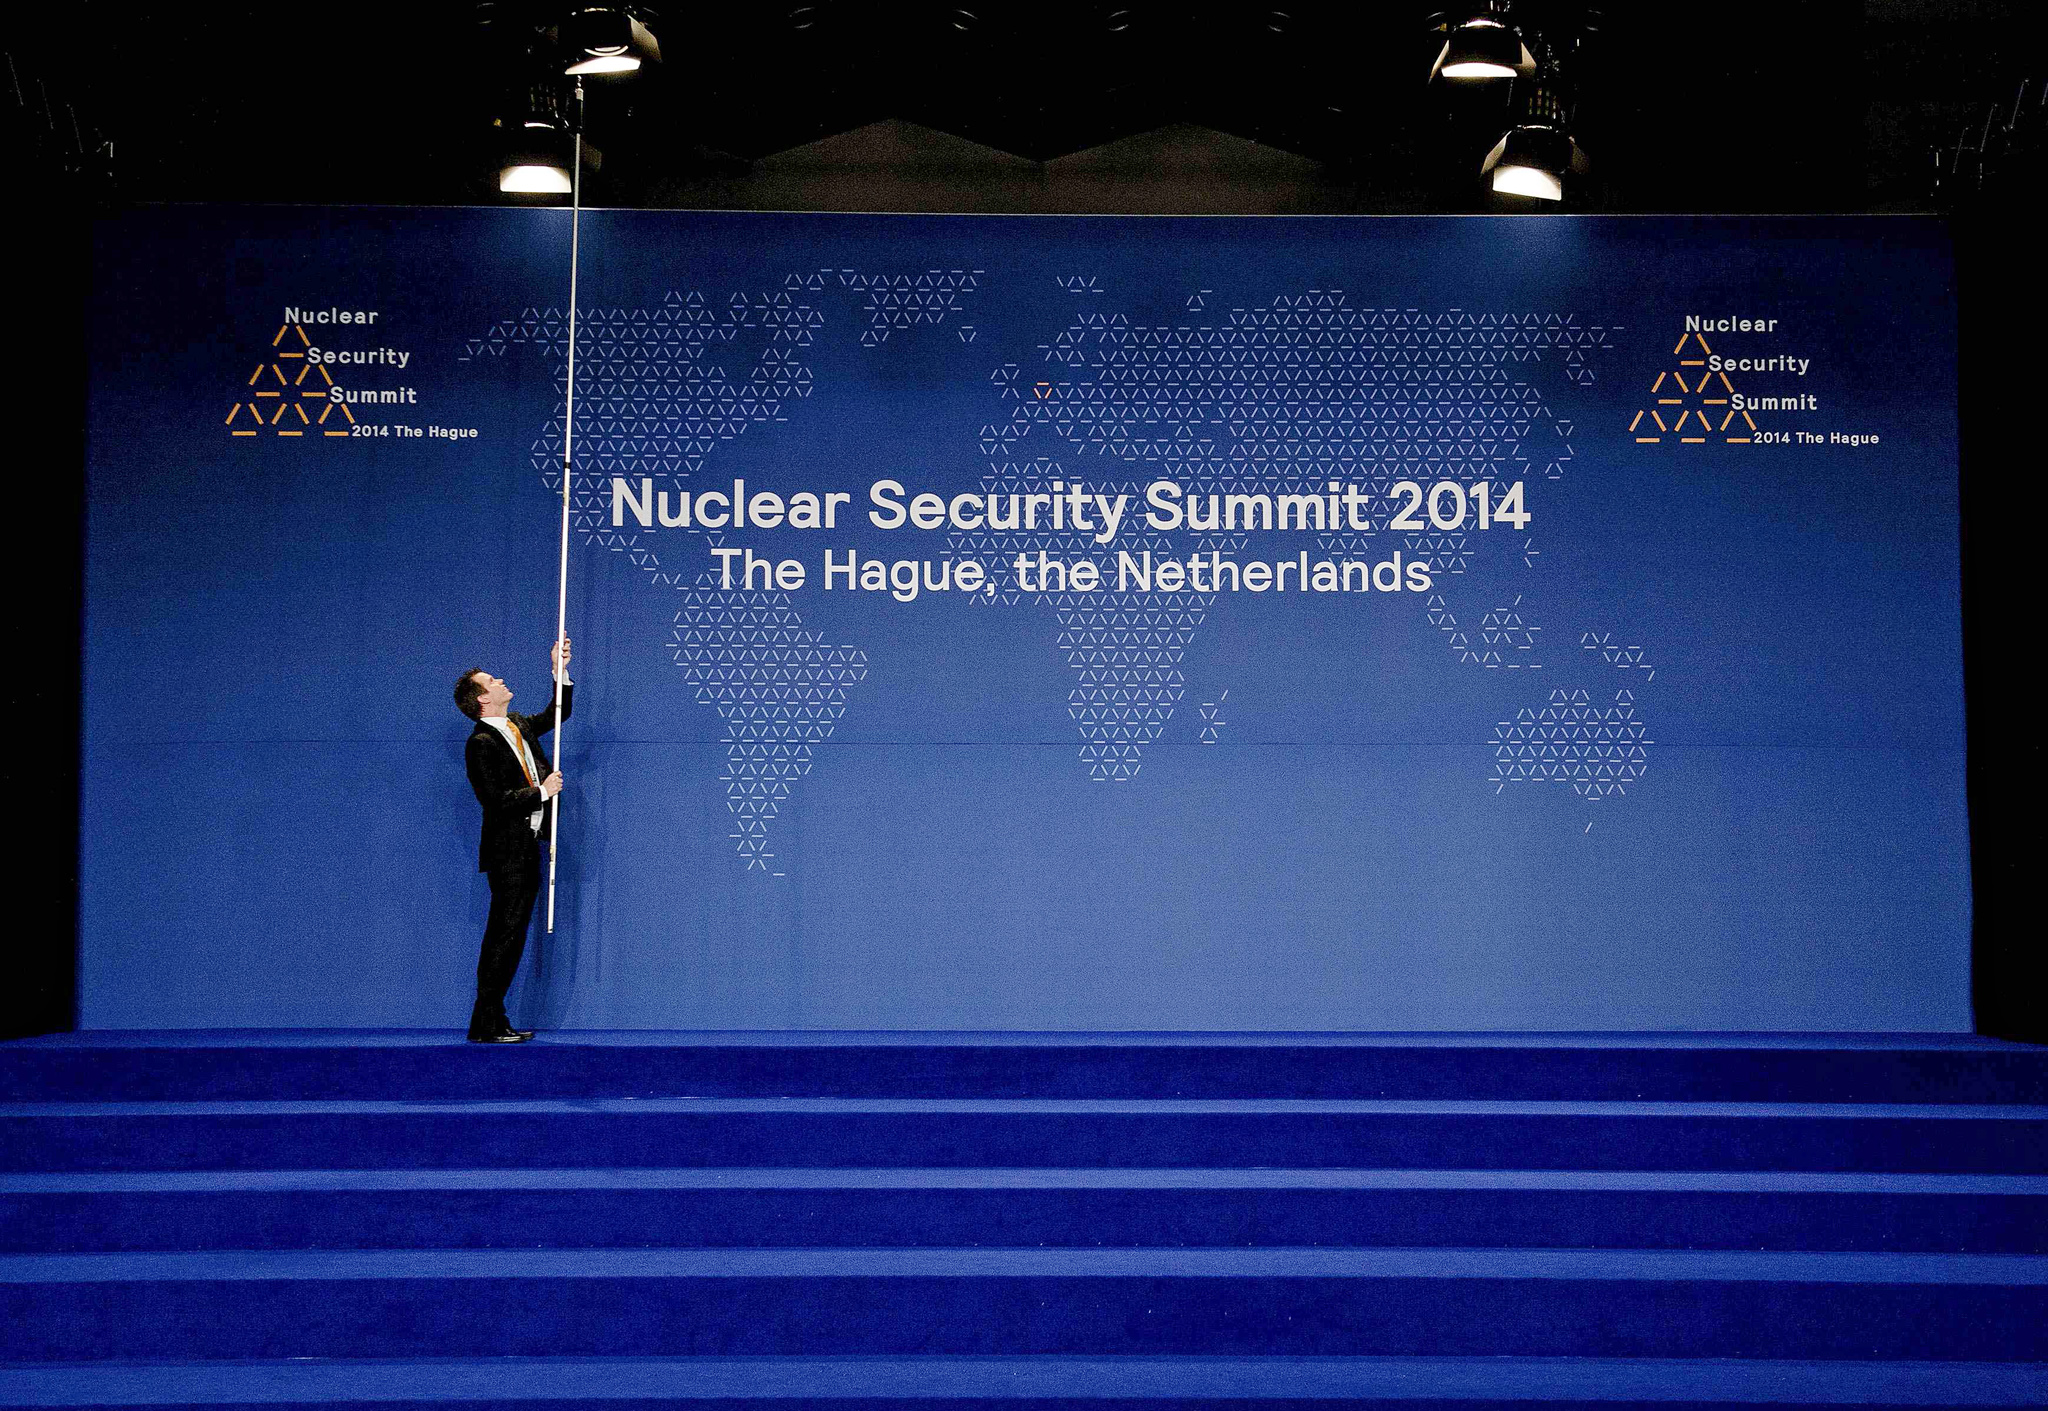 A man adjusts a spotlight above the stage before world leaders' family picture during the Nuclear Security Summit in The Hague...A man adjusts a spotlight above the stage before world leaders' family picture during the Nuclear Security Summit in The Hague March 25, 2014.  REUTERS/Robin Van Lonkhuijsen/Pool (NETHERLANDS  - Tags: POLITICS)